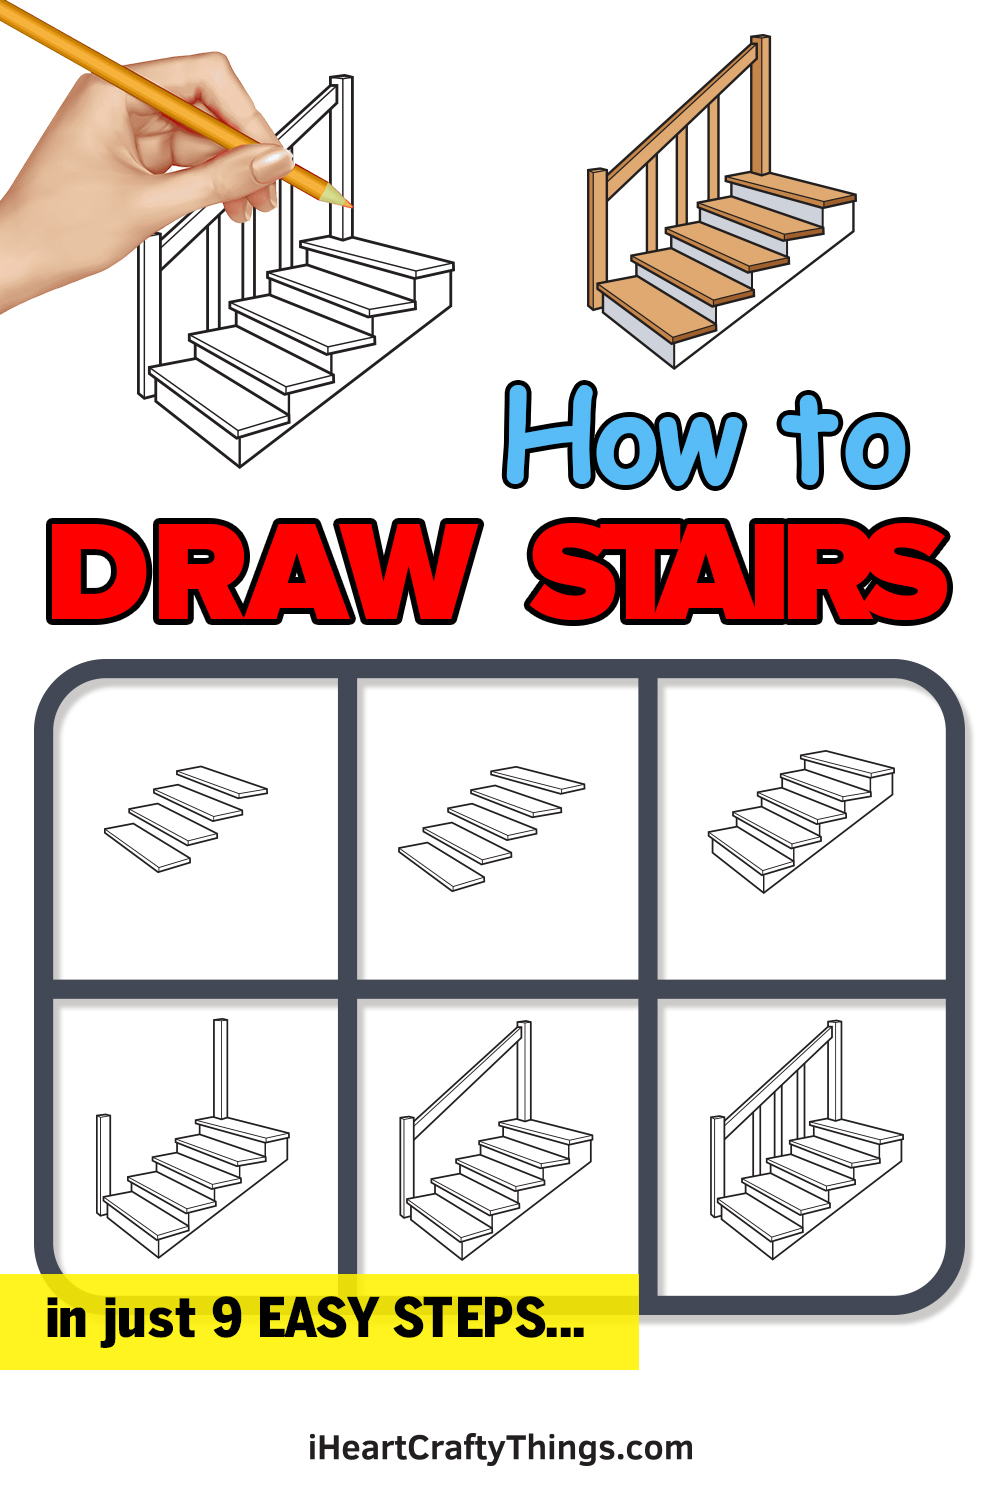 how to draw stairs in 9 easy steps